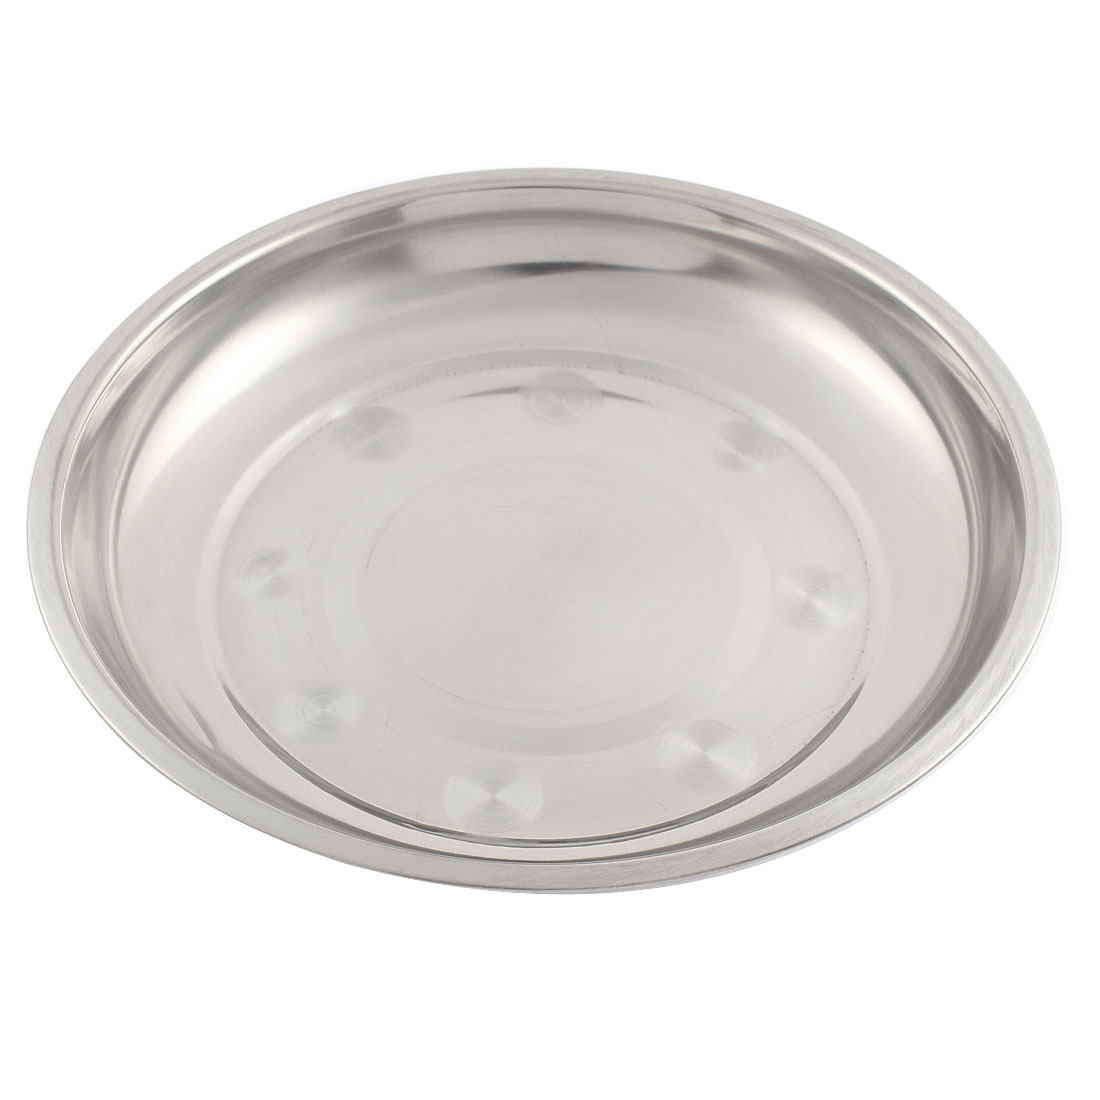 21cm x 3cm Round Silver Tone Stainless Steel Kitchen Dinner Plate Food Holder